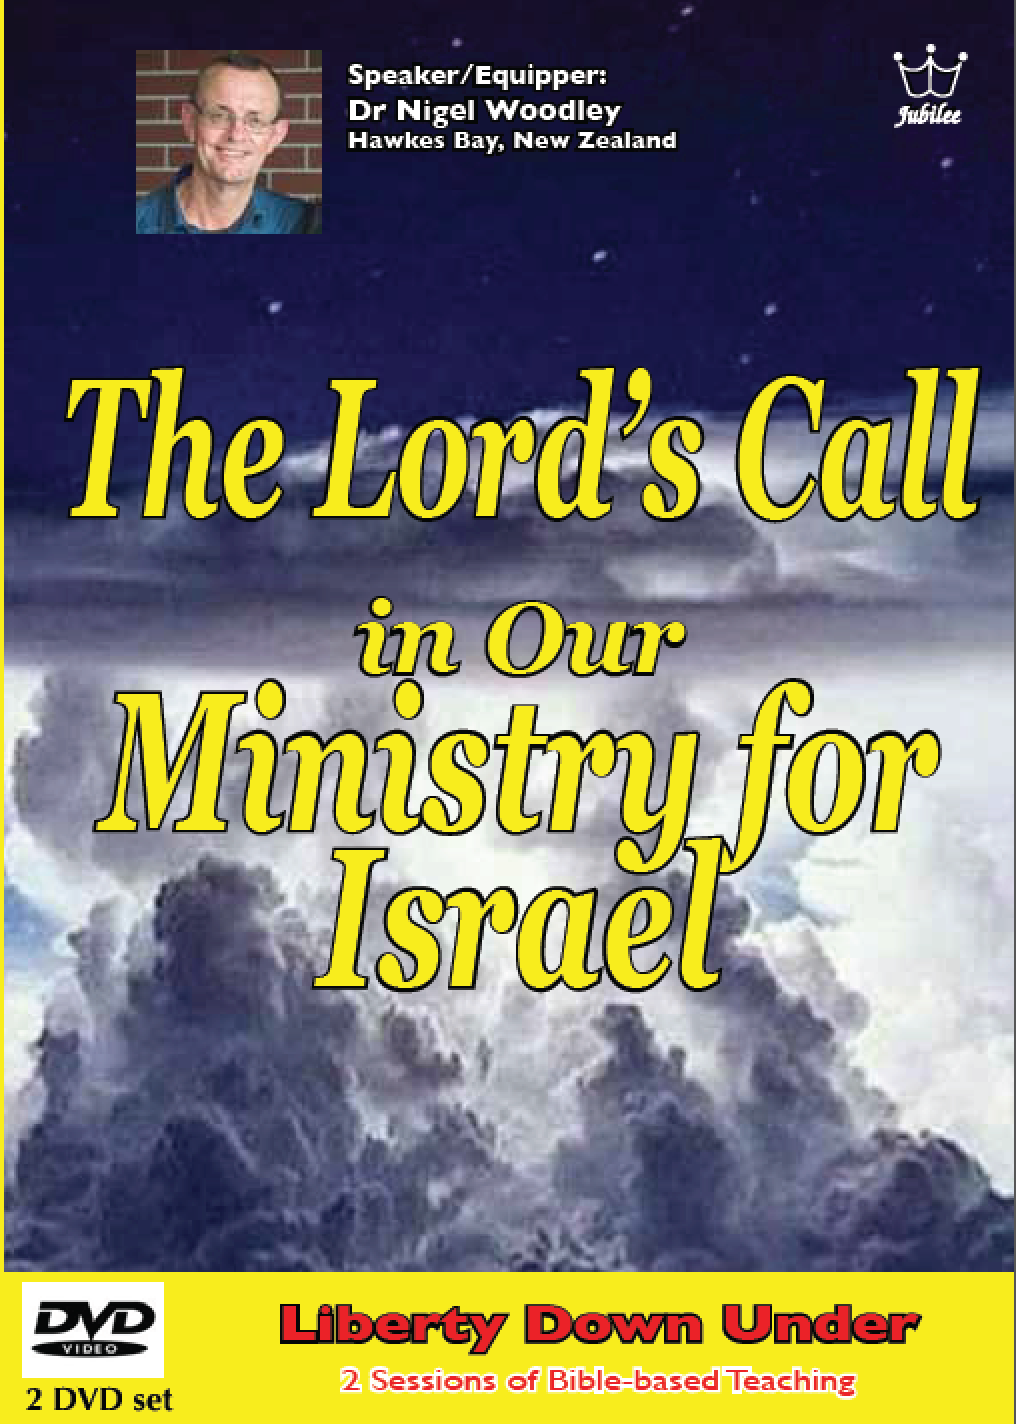 The Lord's Call for Israel, Dr. Nigel Woodley, MP4 Download session 2 of 2